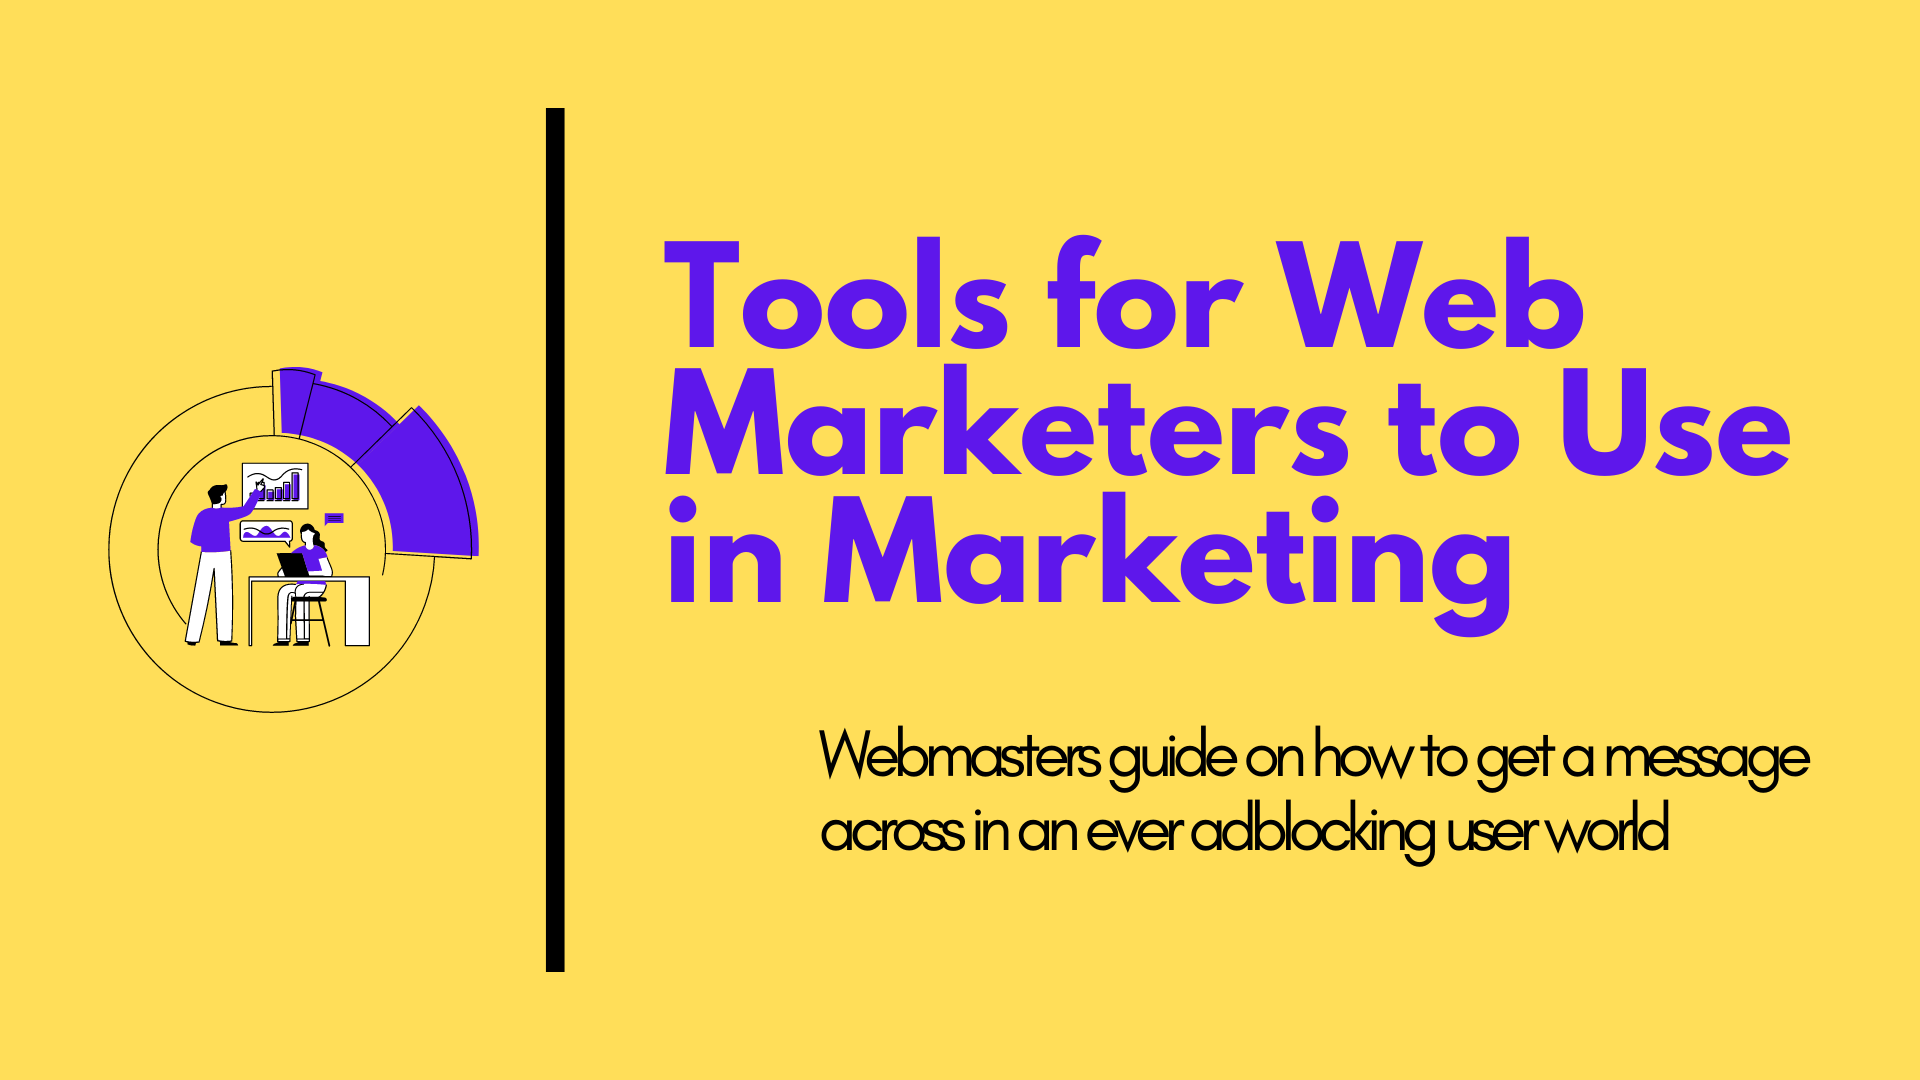 Marketing Tools for Web Marketers